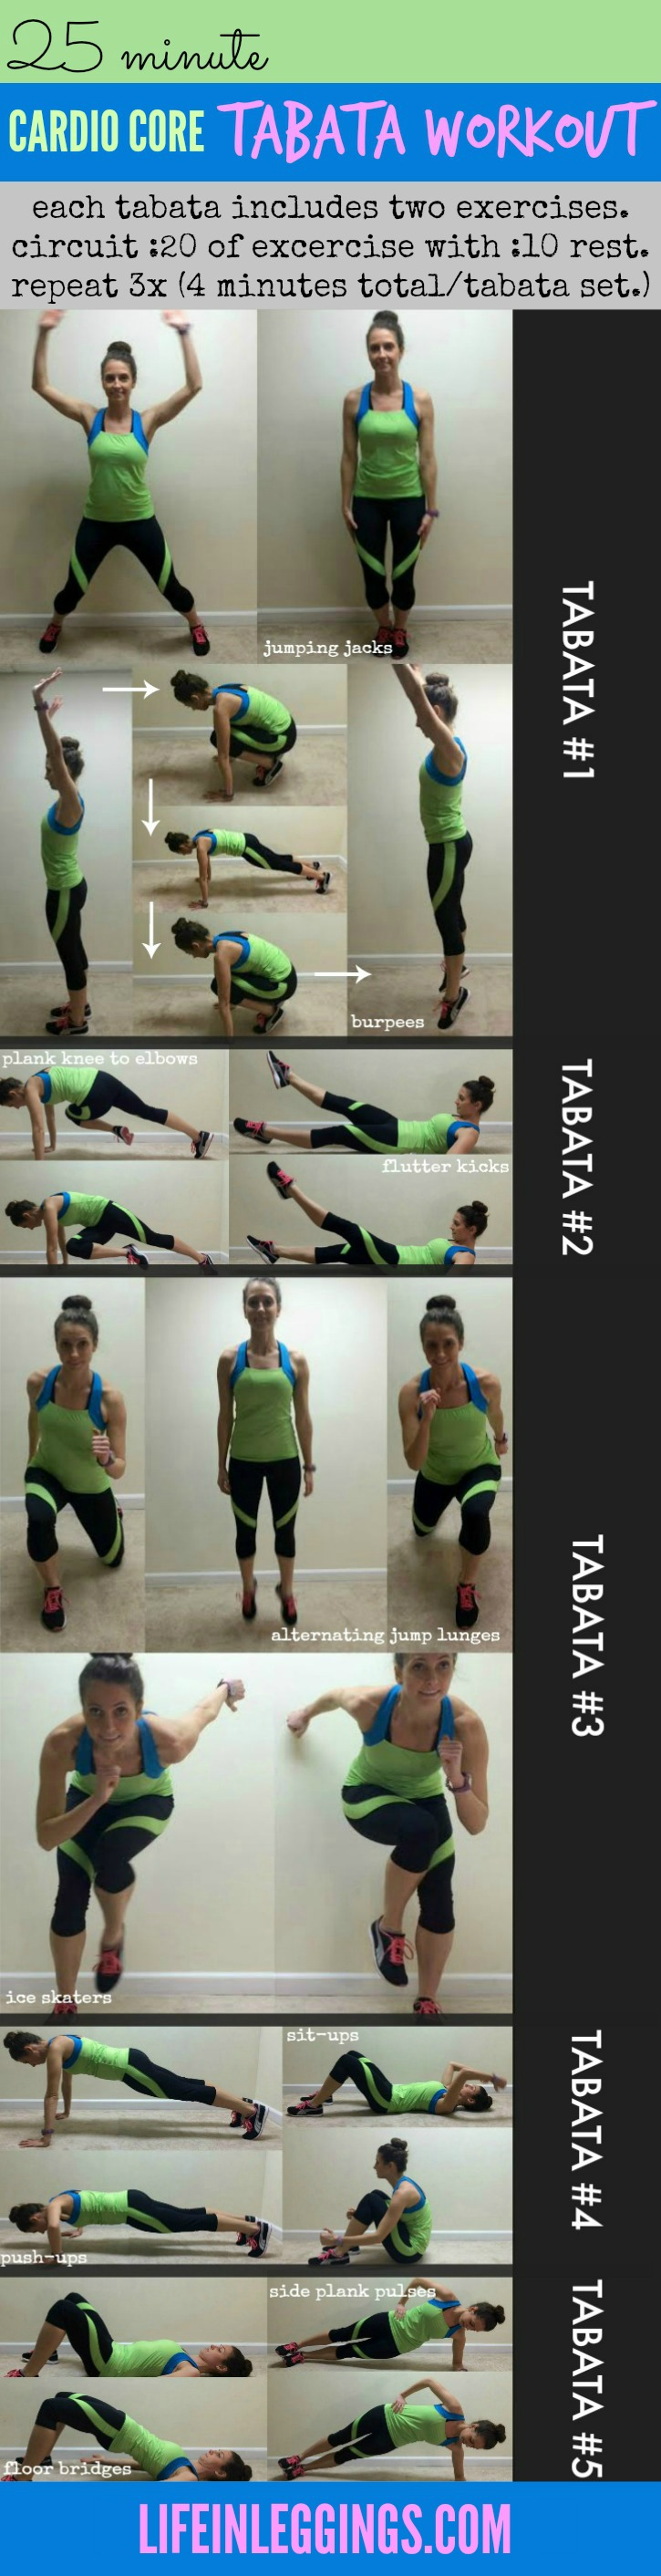 25-Min-cardio-core-tabata-workout